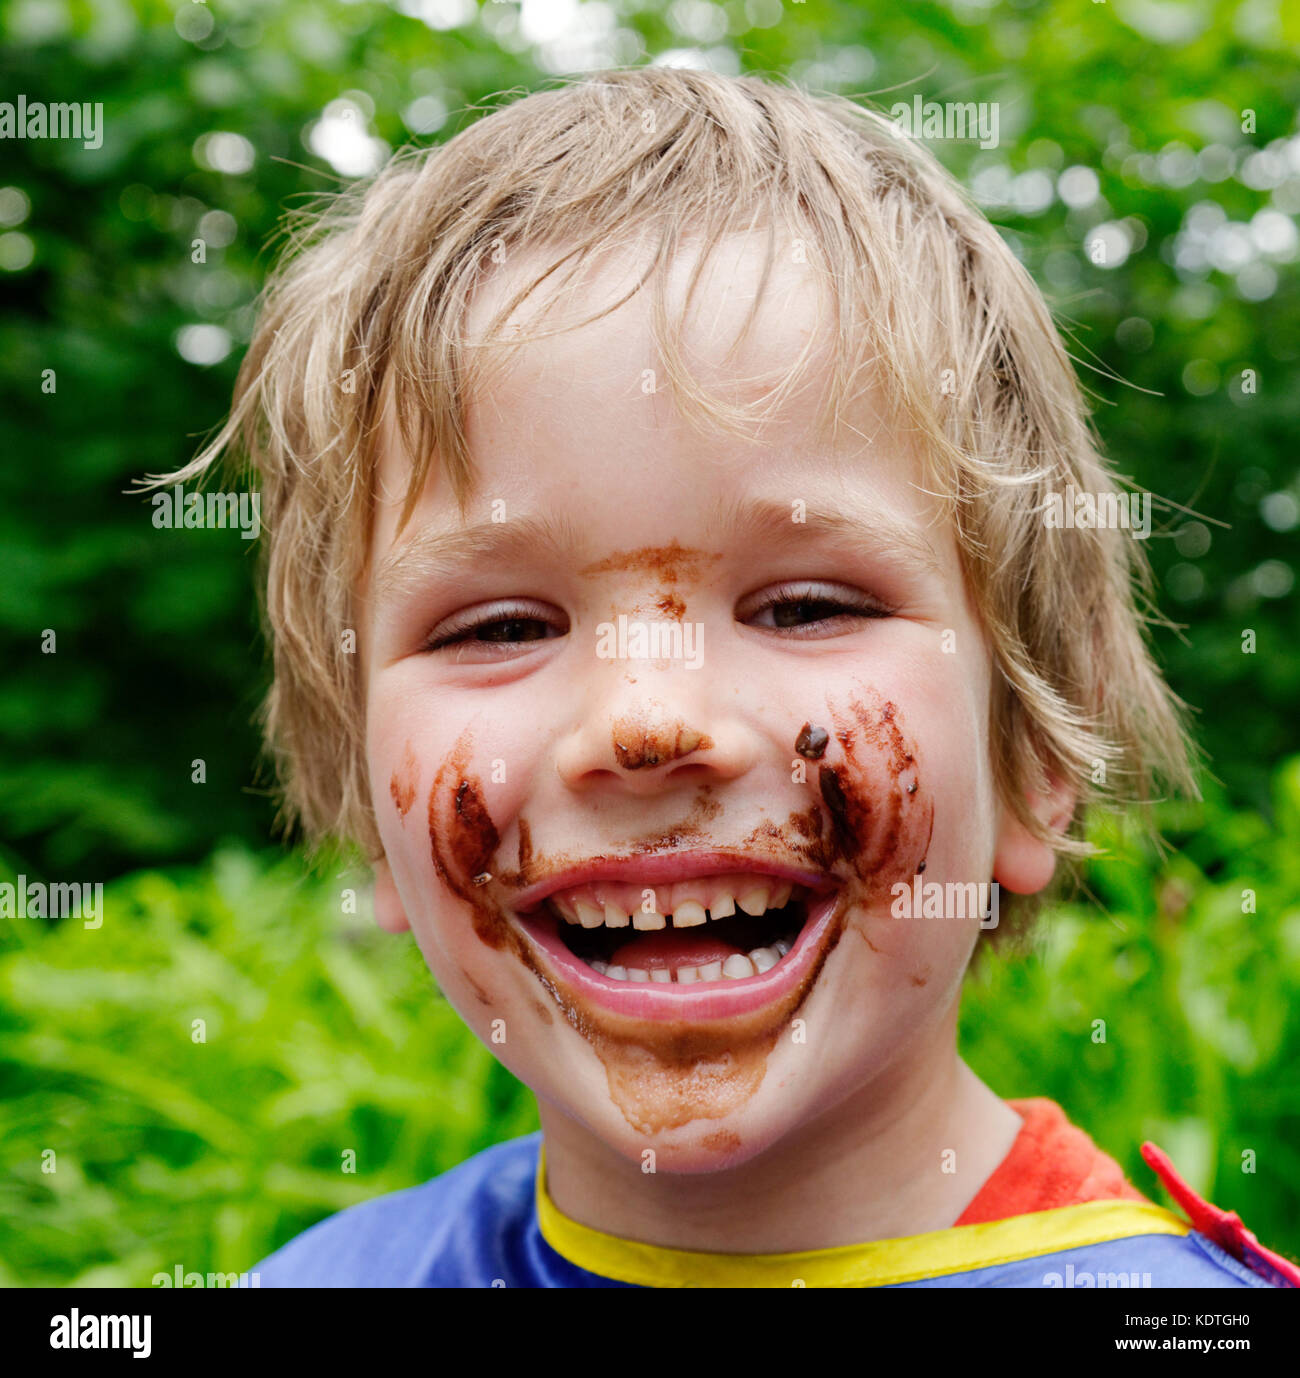 a-little-boy-5-yrs-old-laughing-with-his-face-covered-in-chocolate-KDTGH0.jpg